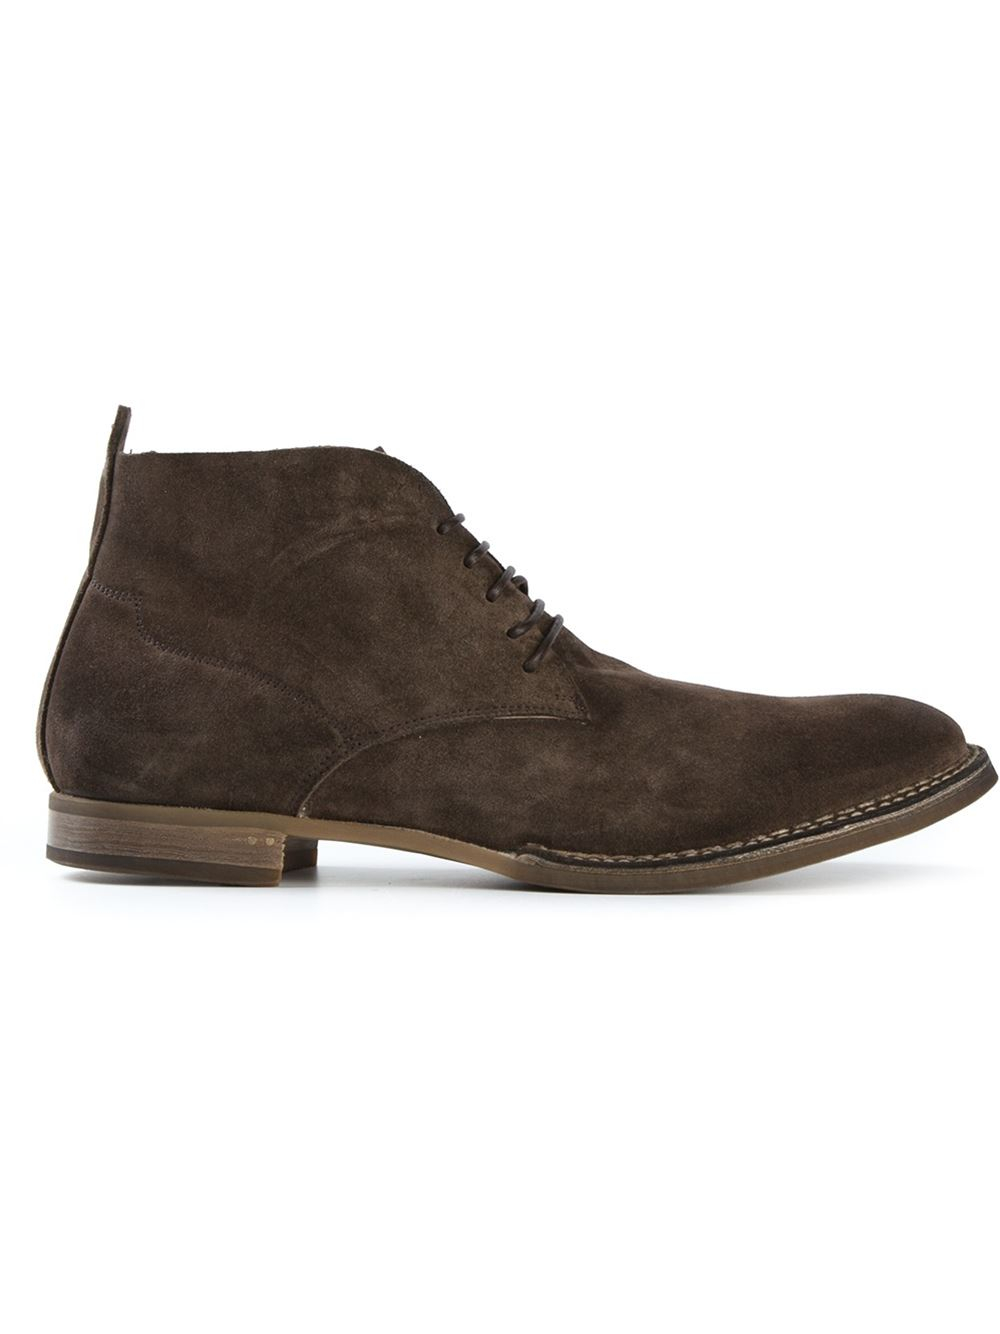 silvano sassetti lace up chukka boots in brown for lyst